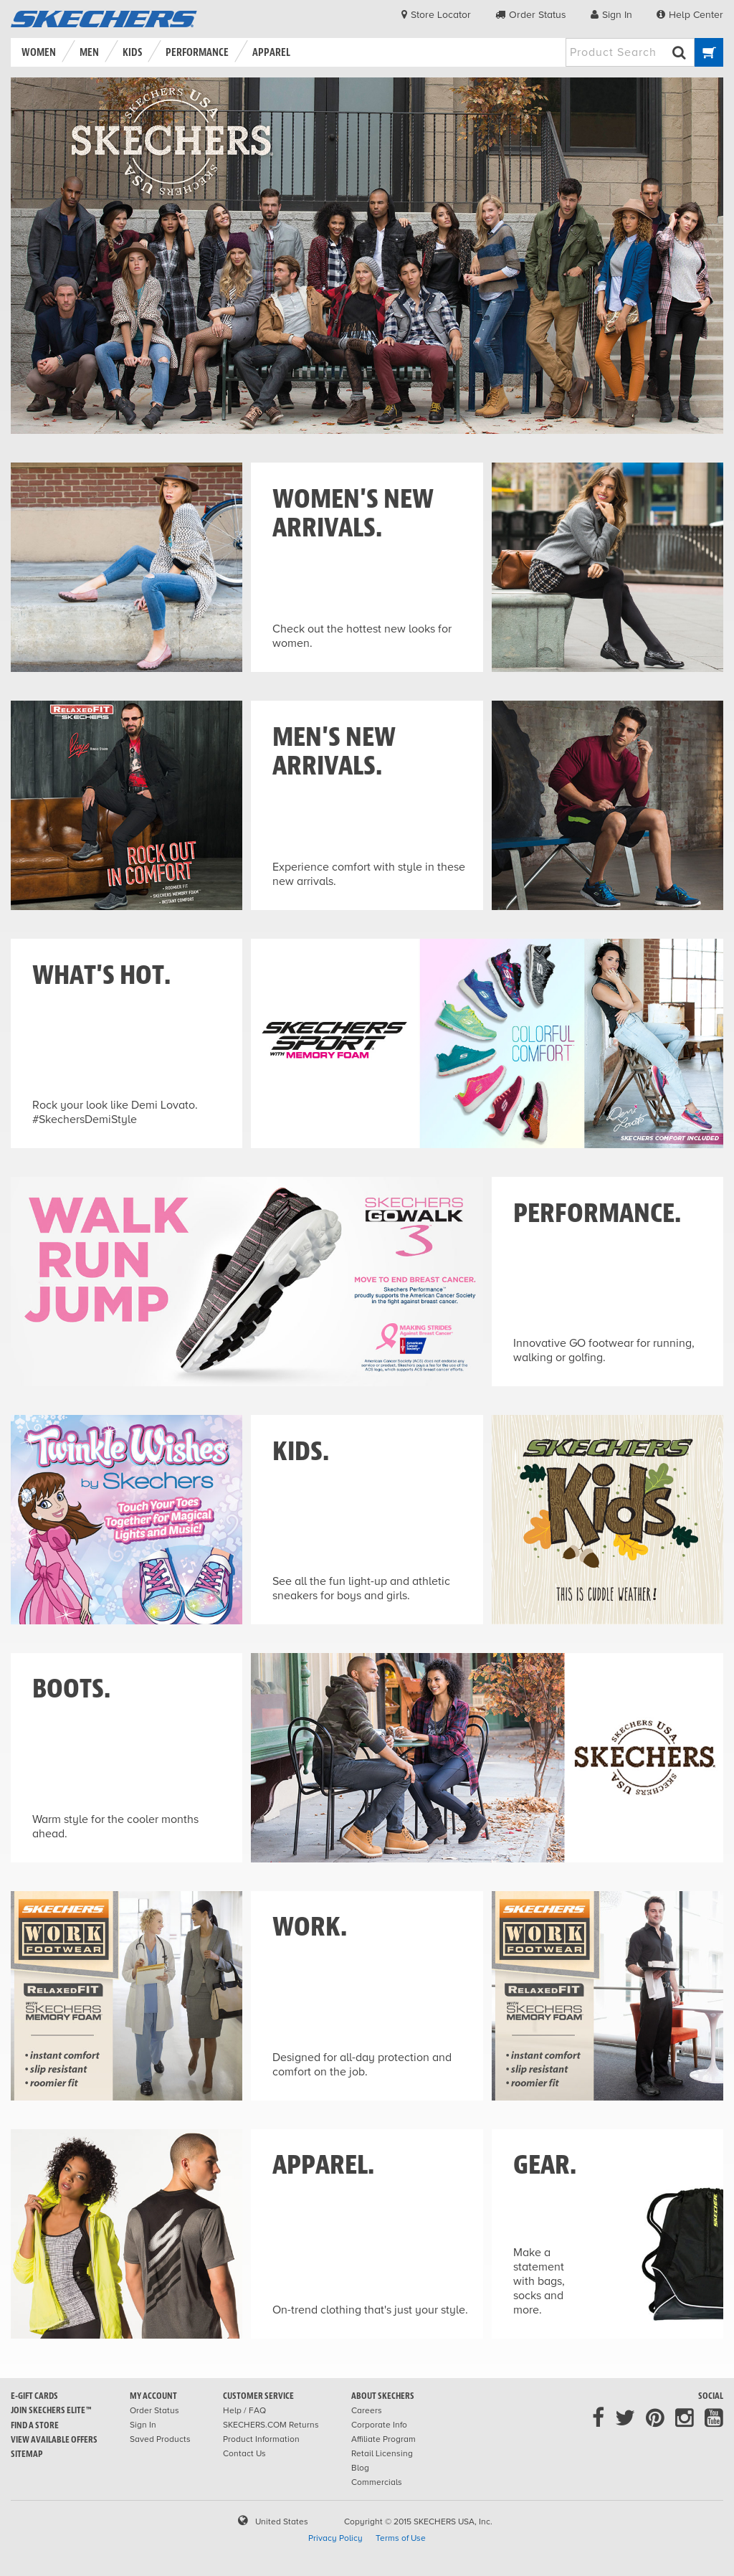 Skechers Usa Competitors, Revenue and Employees Owler